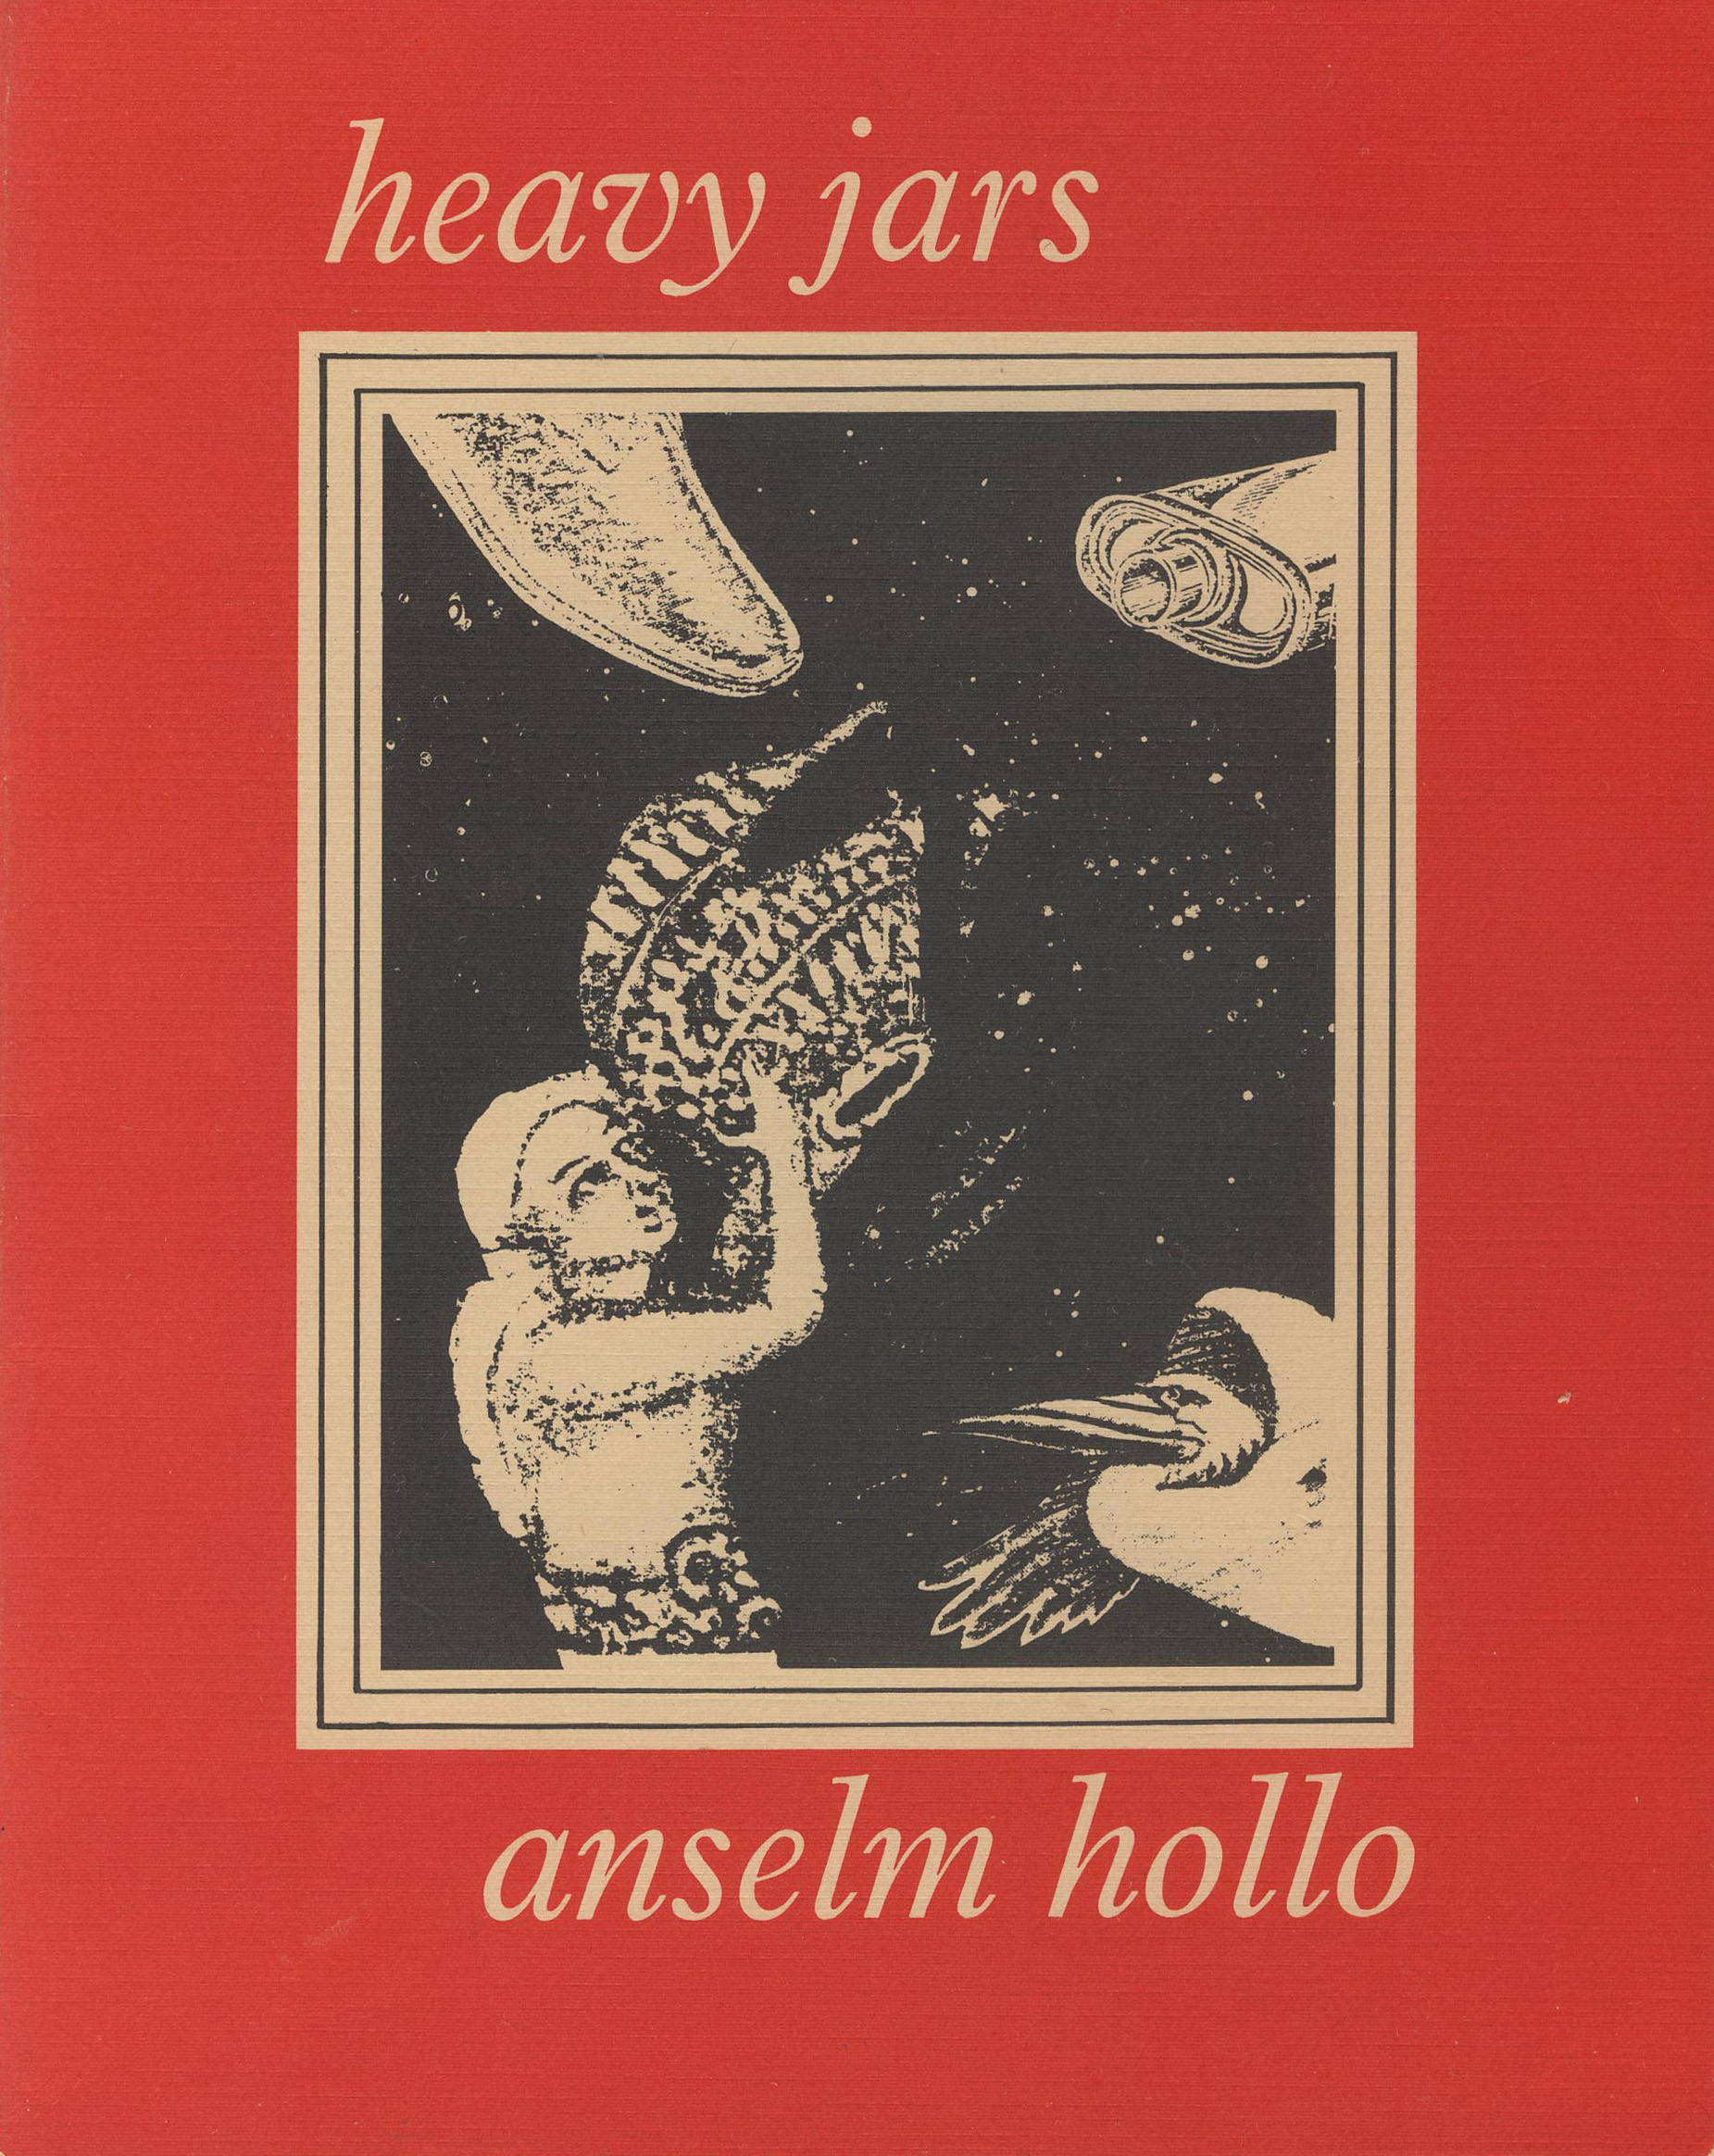 Heavy Jars by Anselm Hollo